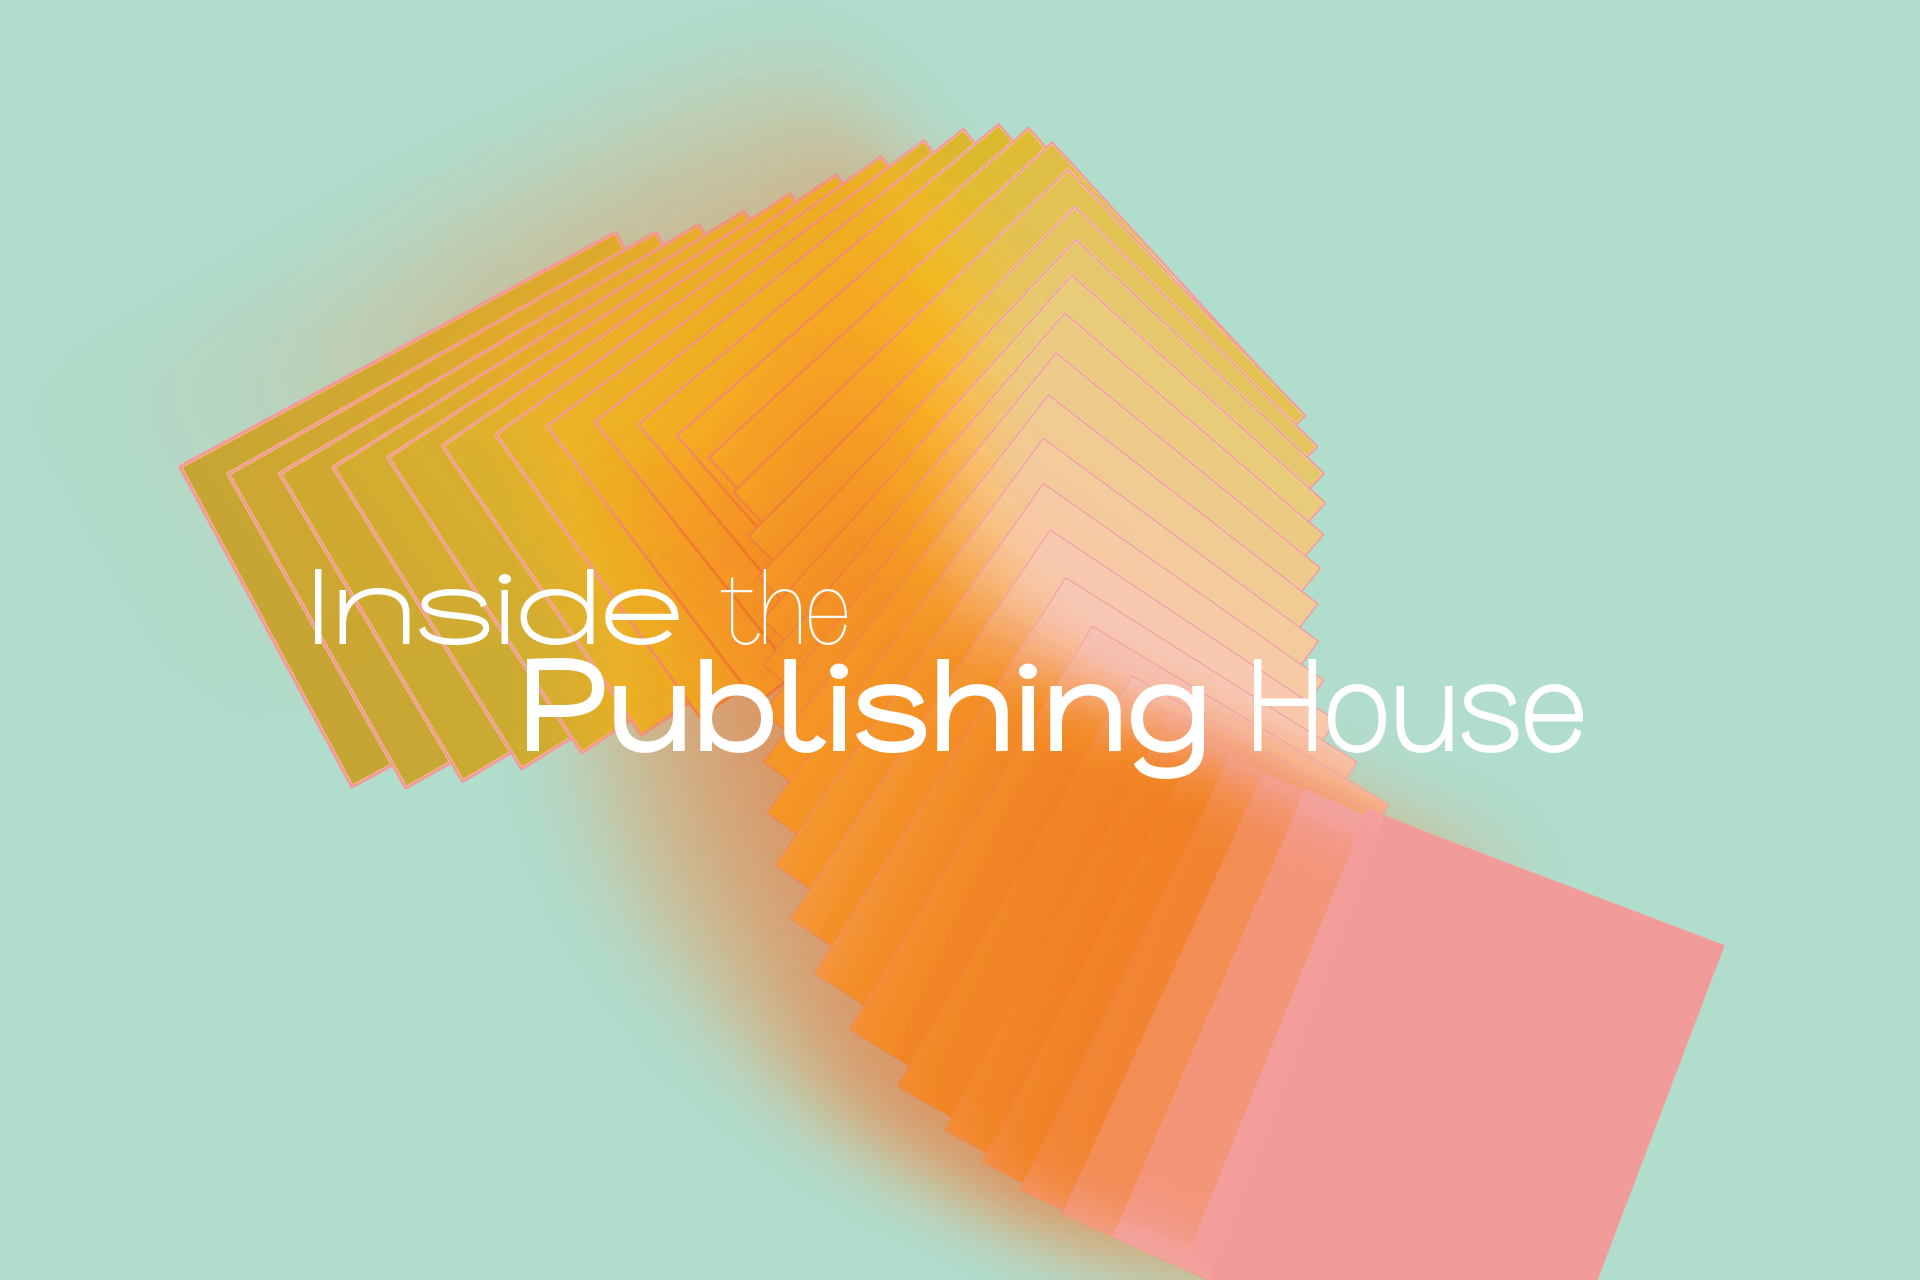 A title graphic for Inside the Publishing House. There is white text on a background of swirling sorbet colours, including green, pink and orange.